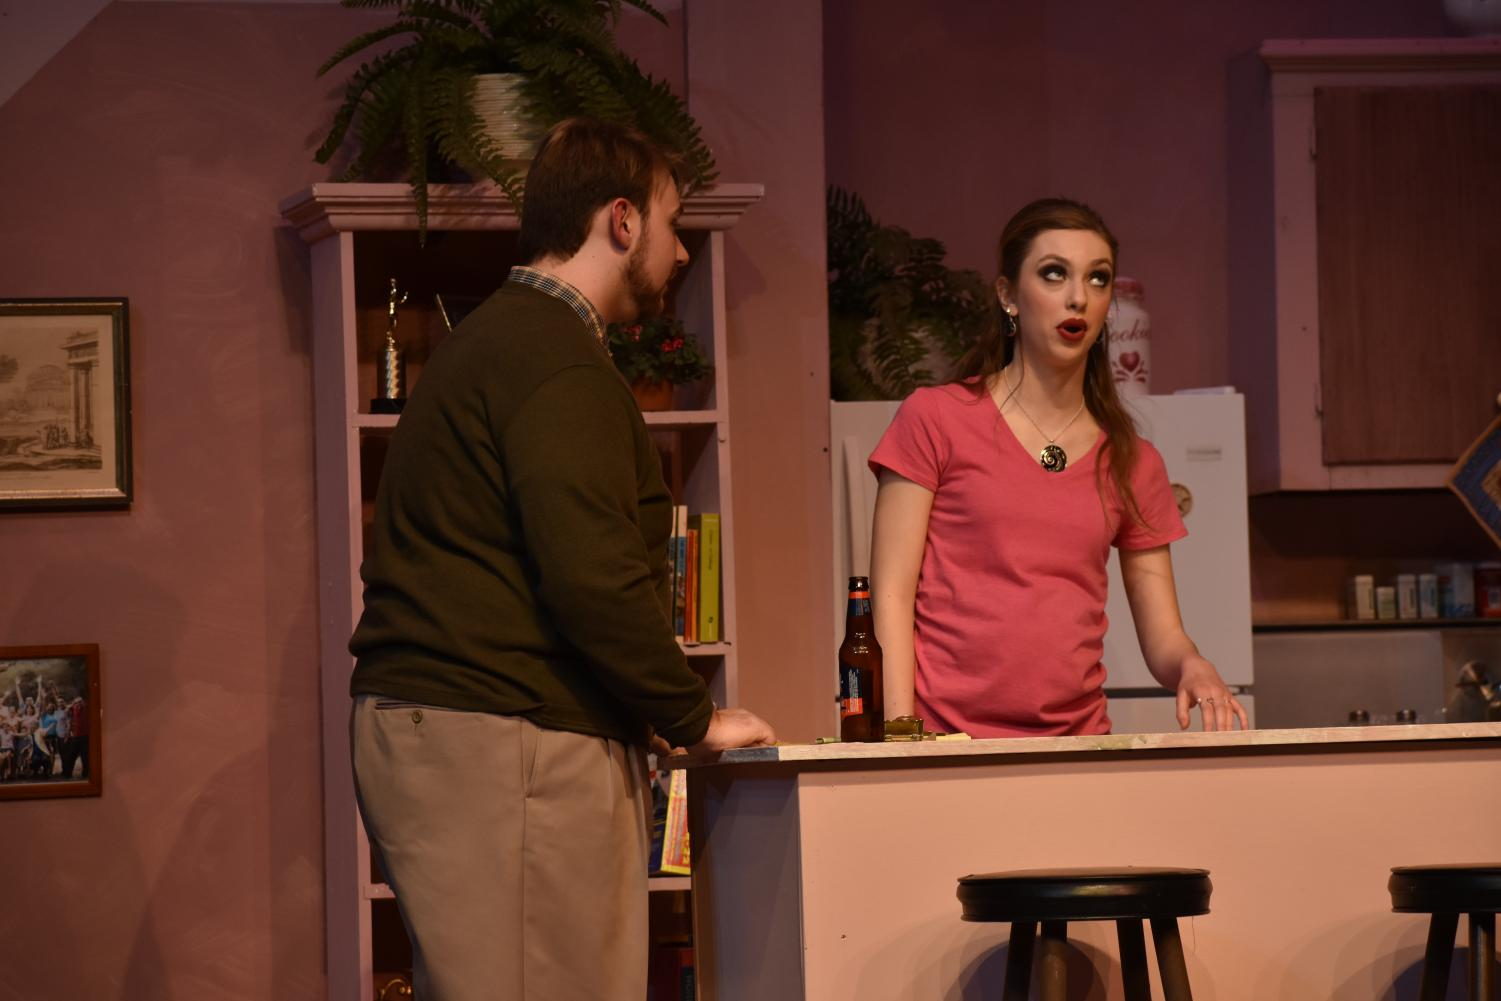 Vinnie Albin and Autumn Christensen play in-laws Howie and Izzy. Howie and his wife, Becca, are still mourning over the death of their son, which conflicts with Izzy's announcement of her pregnancy.